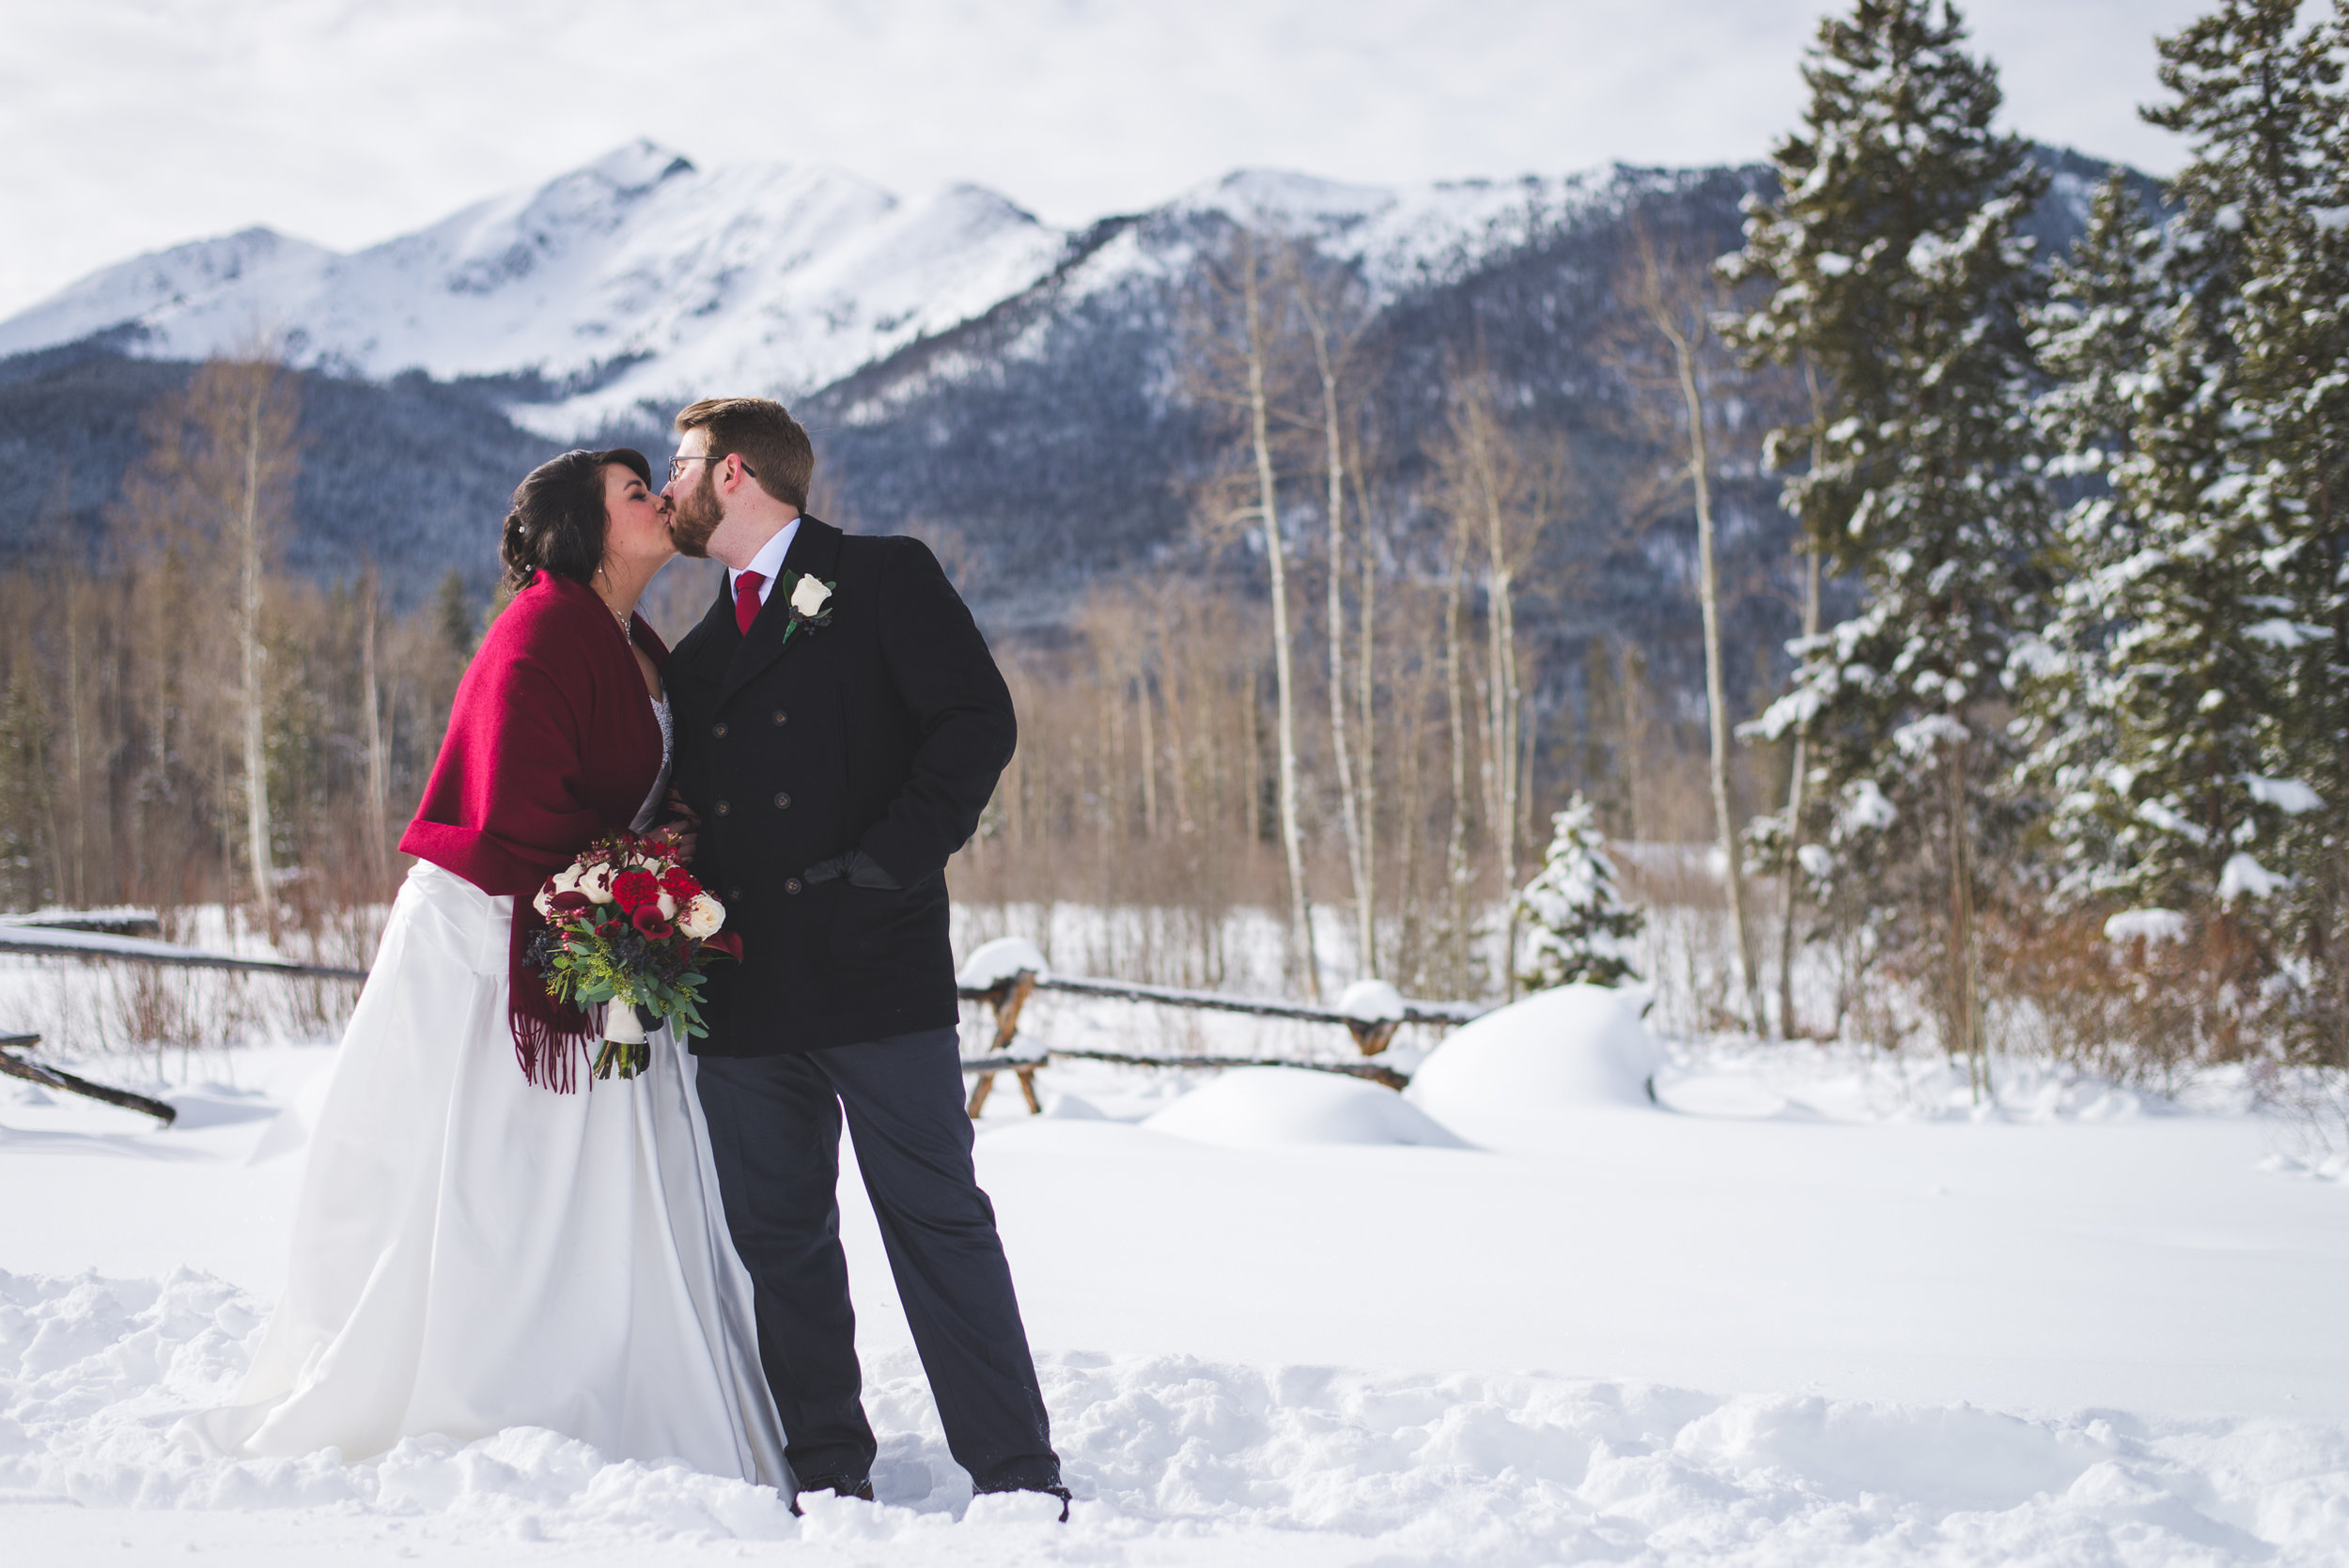 - {DEVYN + PHILIP}Philip and I cannot thank you enough for all of the gorgeous photos you captured on our special day! We sincerely appreciated you standing knee-deep in snow + being outside in the cold for our dream Colorado wedding! You are an absolute rock star!